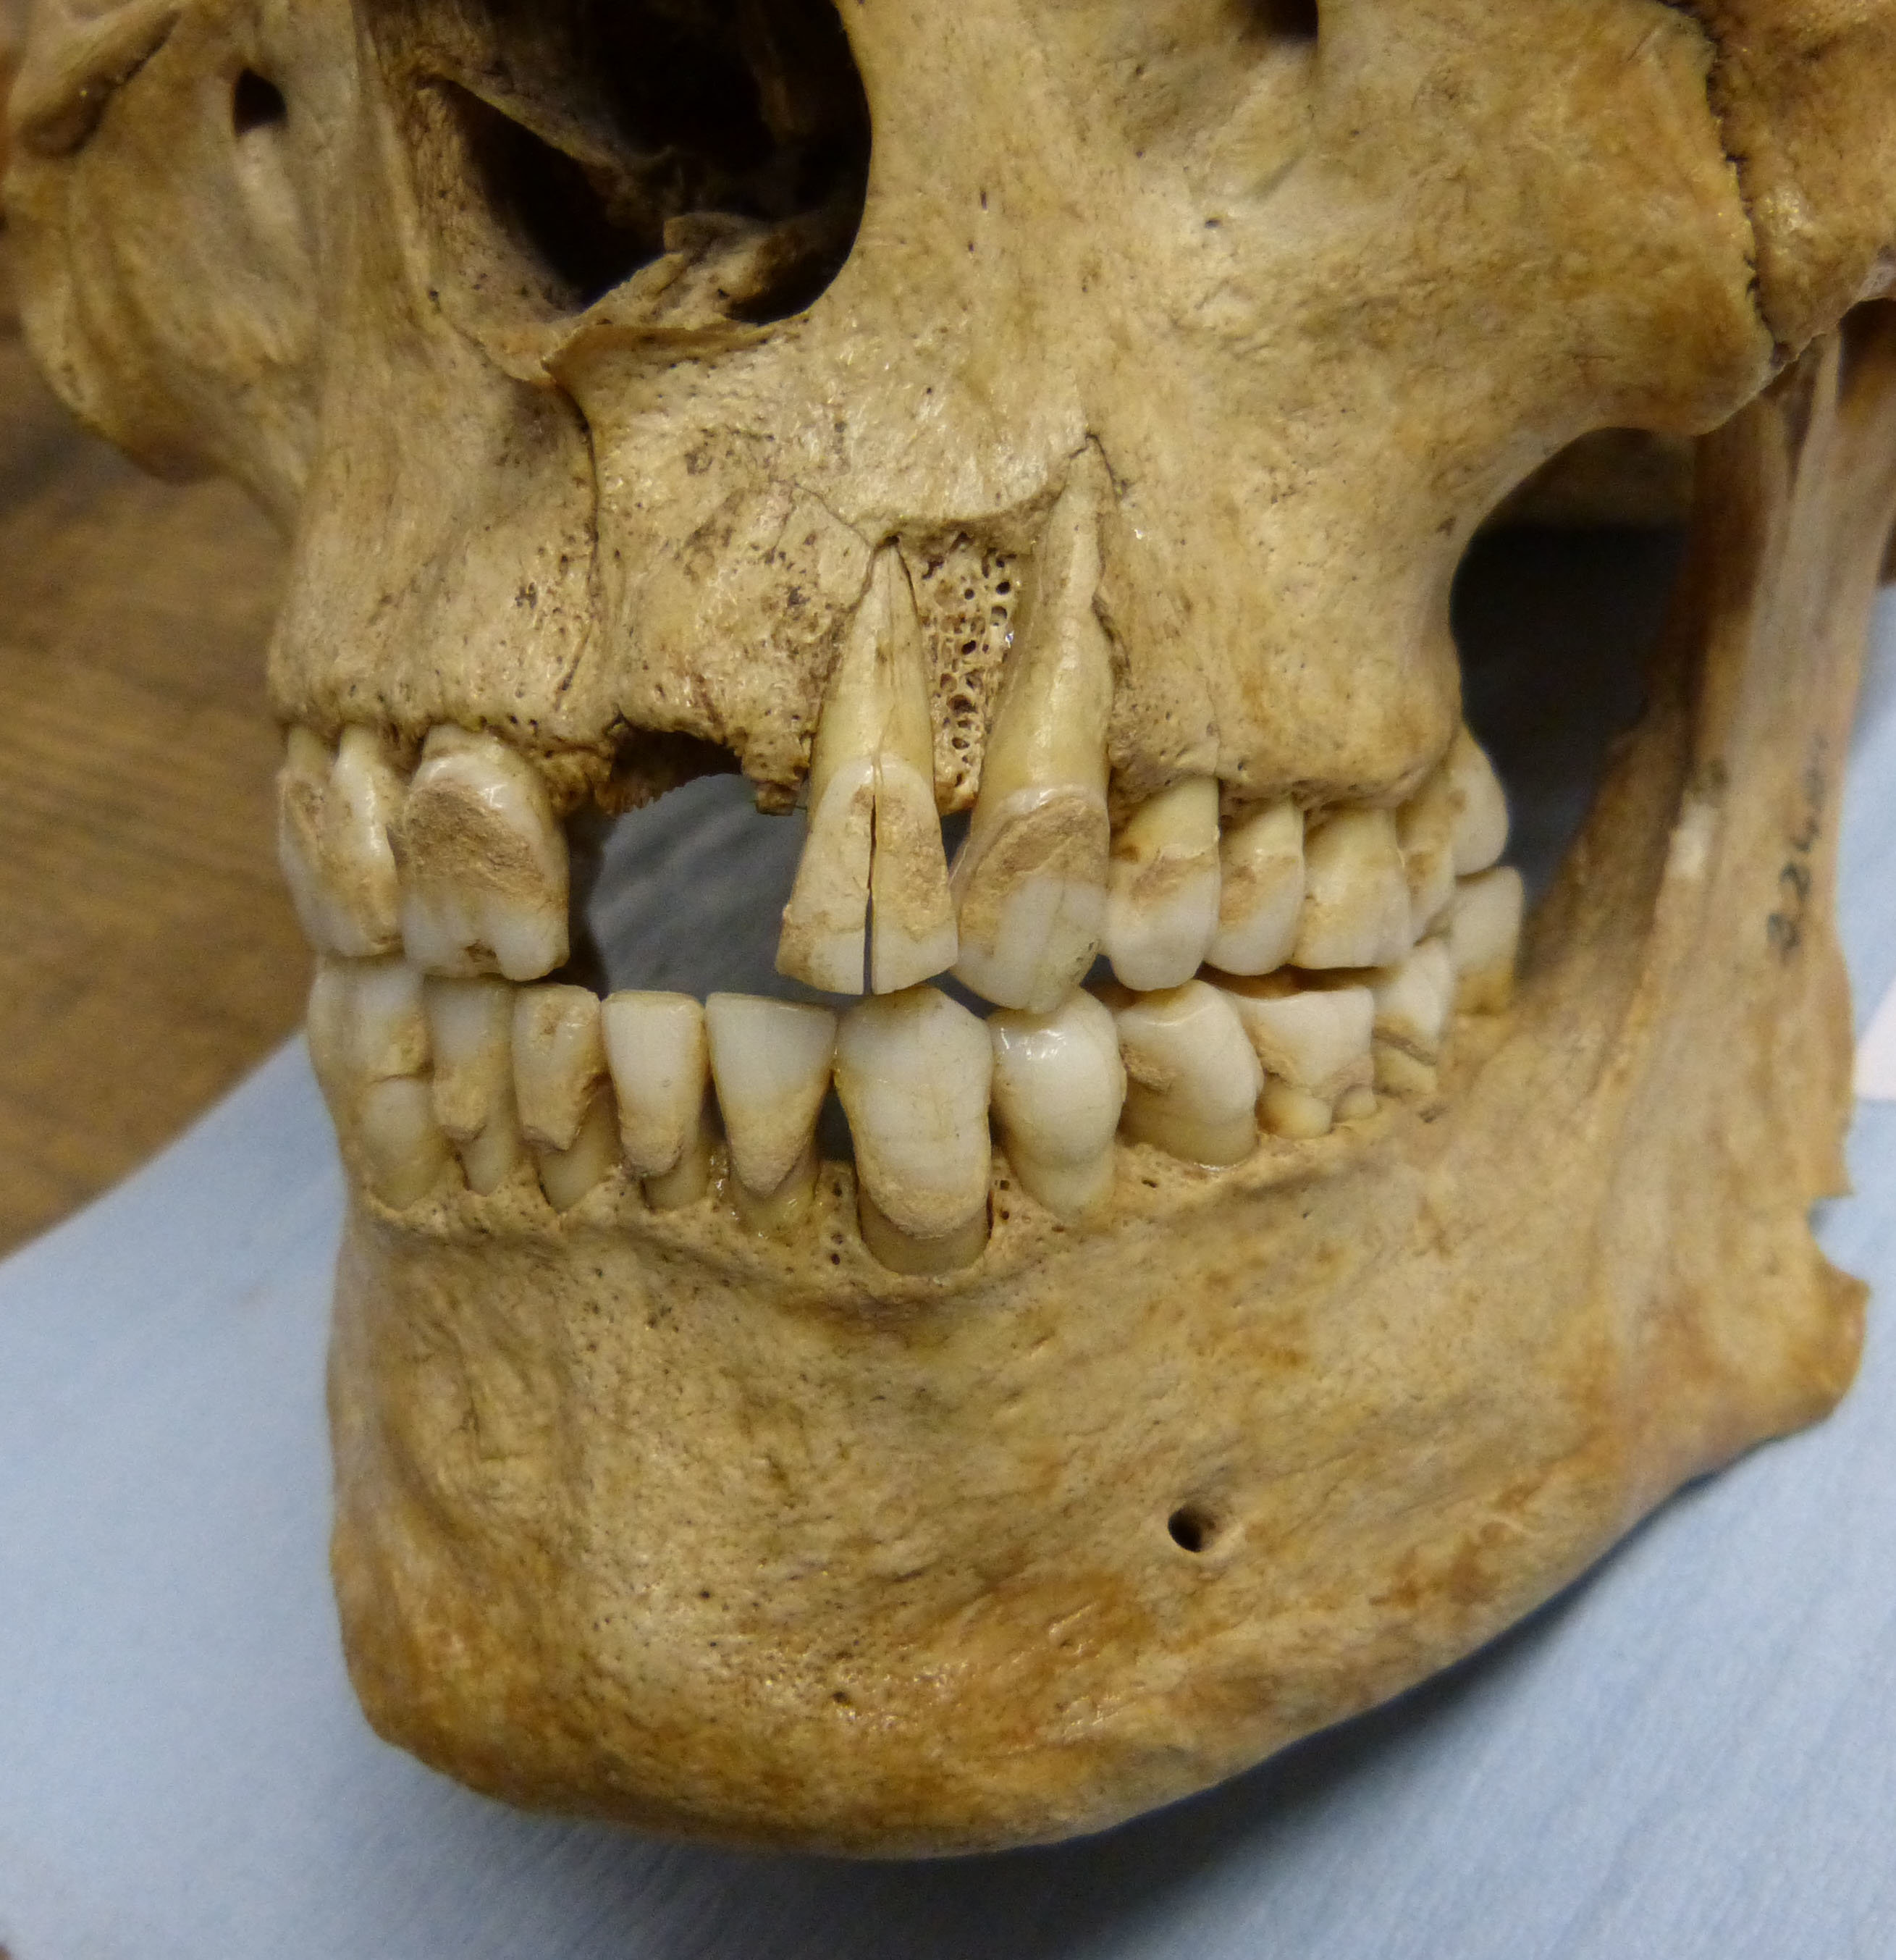 research on british teeth unlocks potential for new insights into